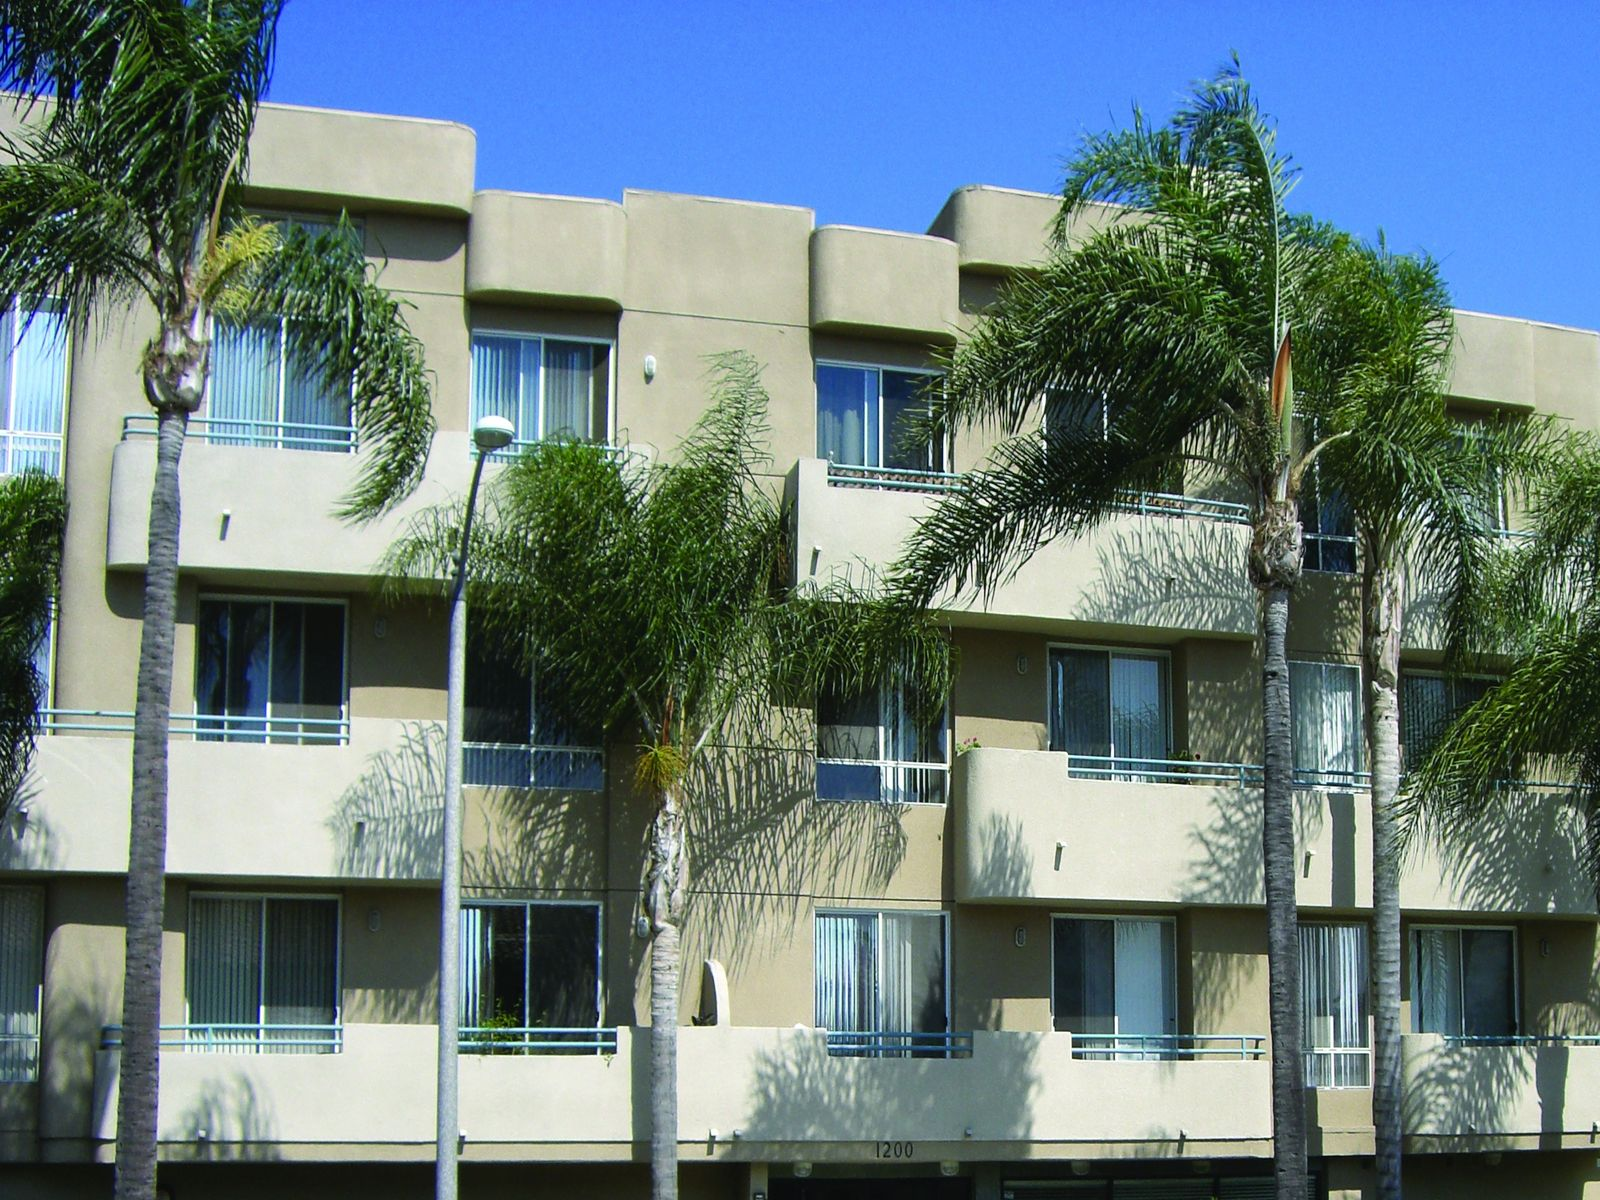 Stylish upgraded 2 bedroom condo los angeles ca for California los angeles houses